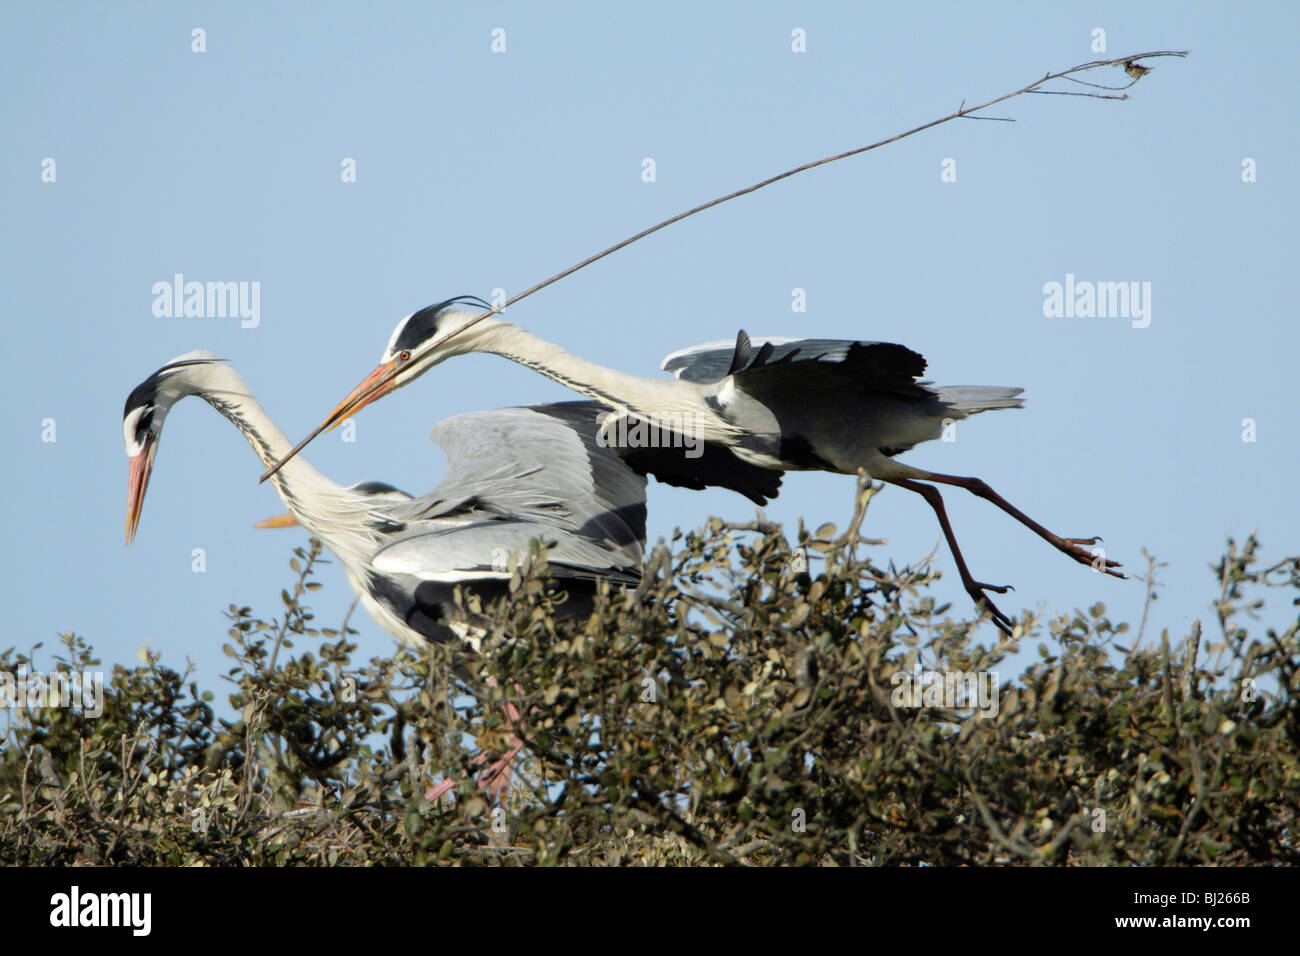 Grey Heron (Ardea cinerea), in flight landing at nest with nest material, Portugal - Stock Image